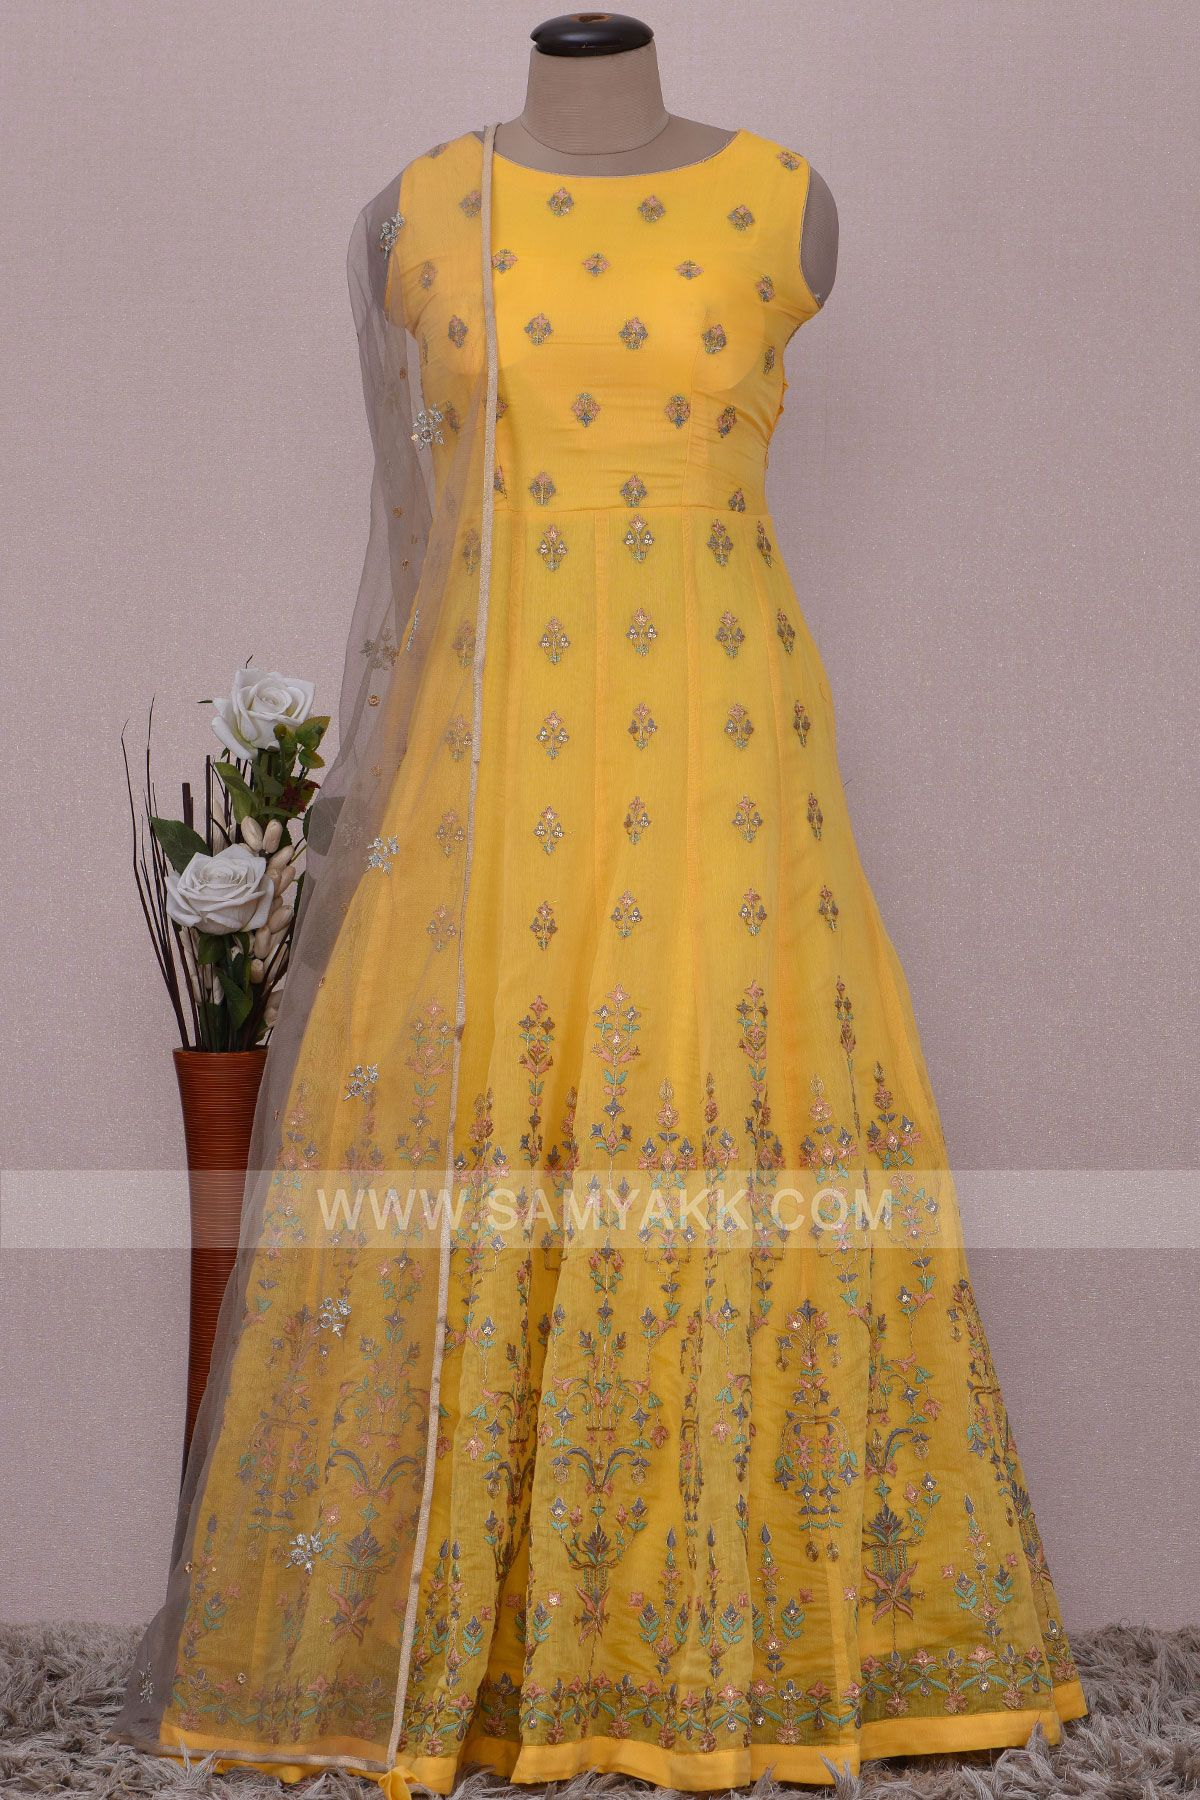 Set fashion statement by adorning this aureolin yellow